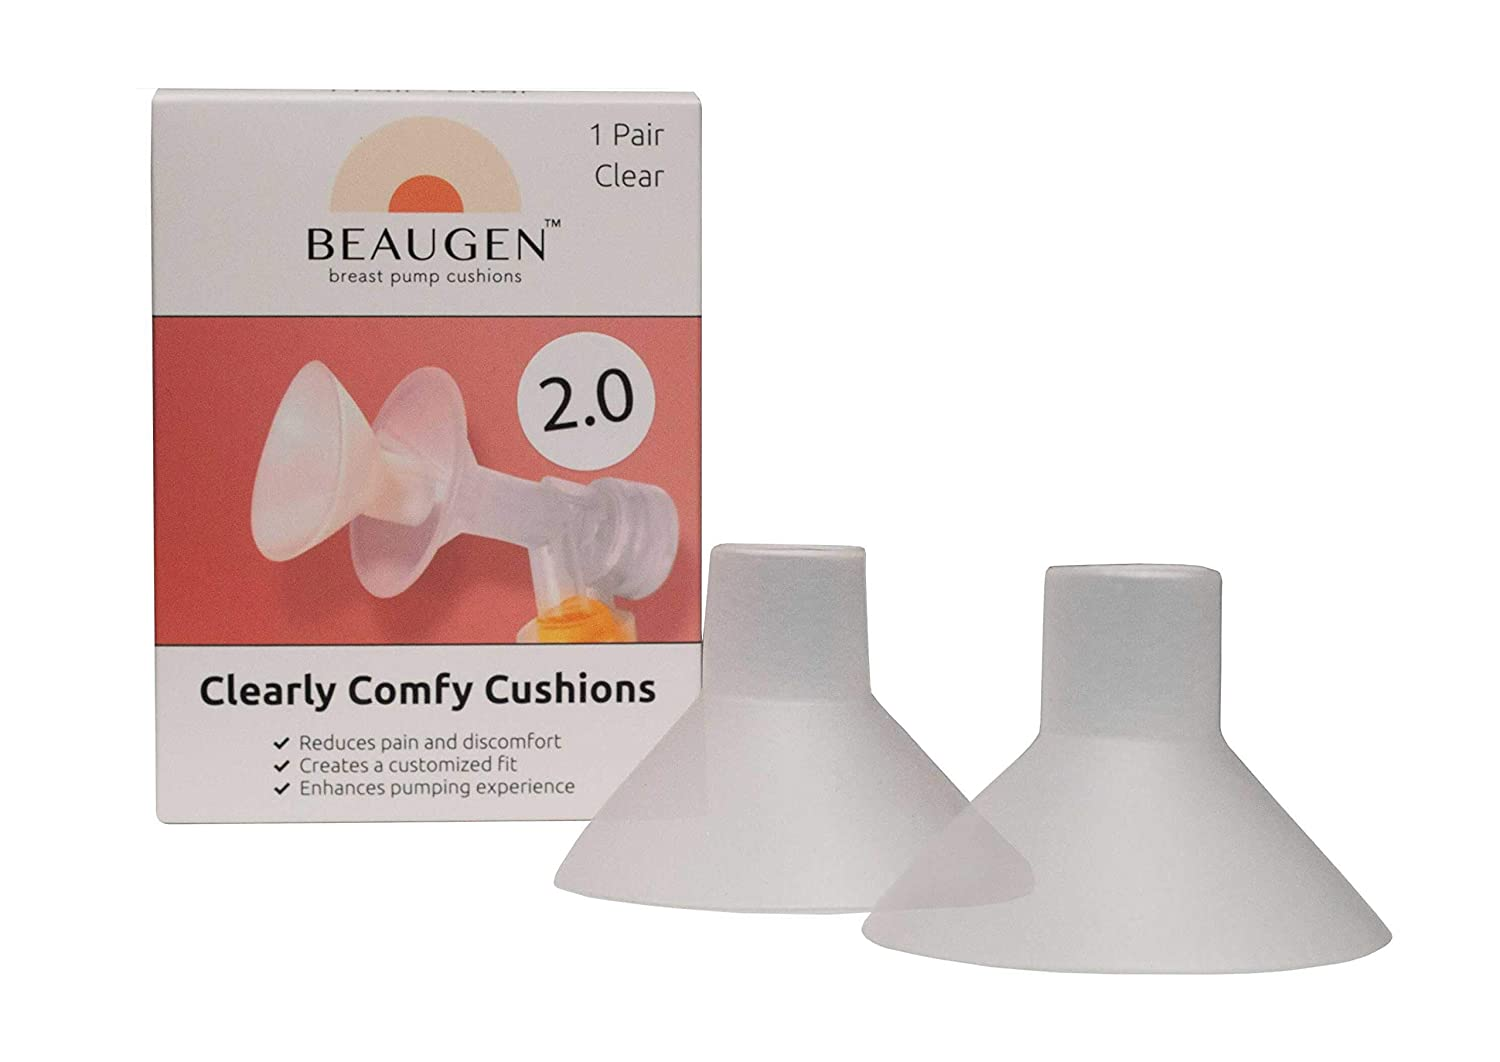 New BeauGen Clearly Comfy Breast Pump Cushion 2.0 – REIMAGINED Soft, Stretchy, Clear, and Comfortable Flange Inserts for Improved Comfort and Fit – BPA Free, Food Safe Plastic (1 Pair)